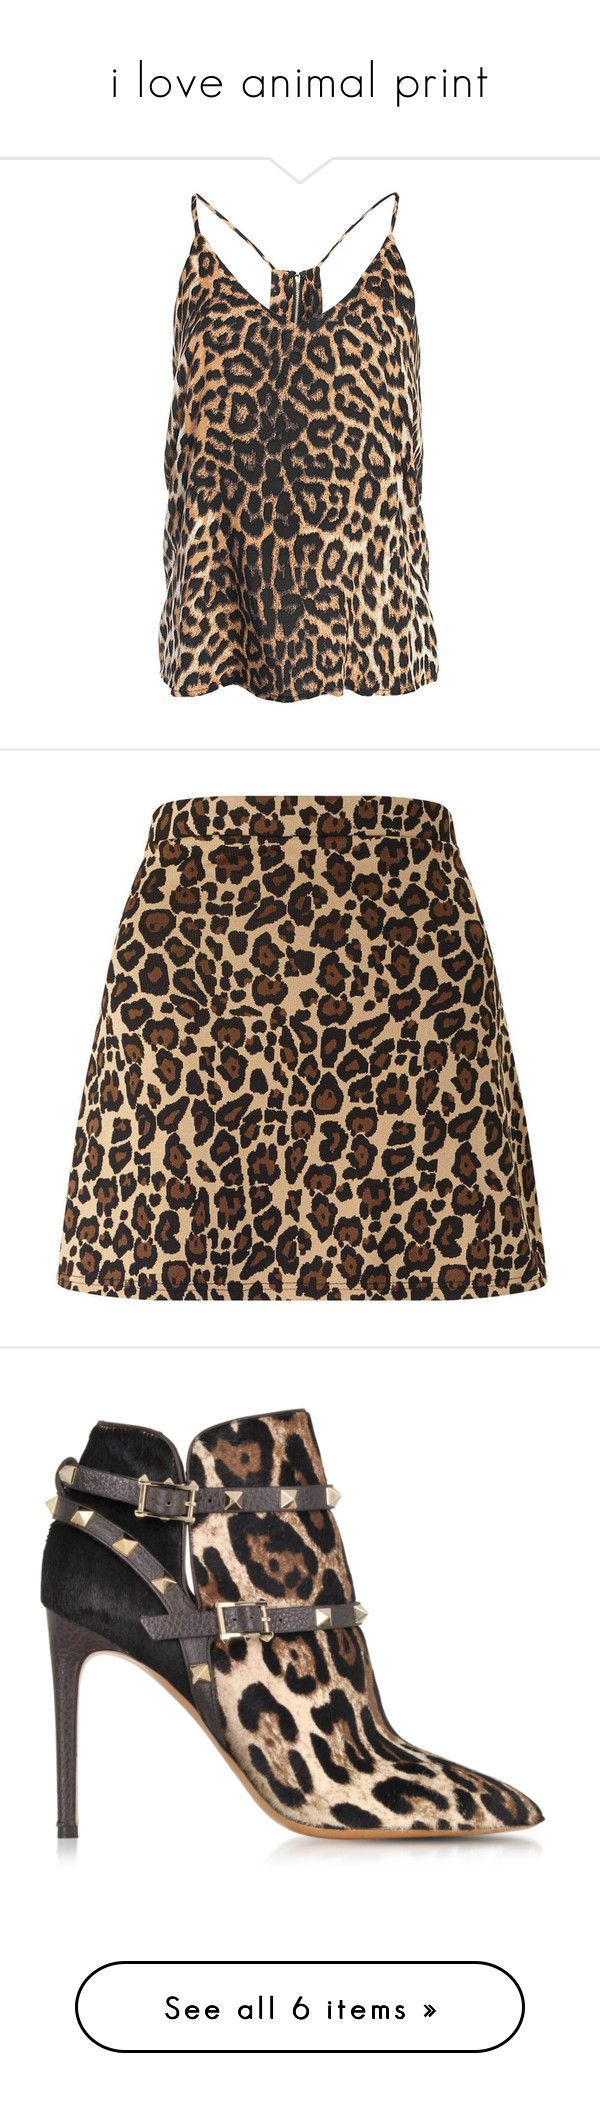 """""""i love animal print"""" by richell948 ❤ liked on Polyvore featuring tops, leopard, leopard print camisole, leopard camisole, leopard print cami, zipper top, leopard top, skirts, mini skirts and bottoms"""